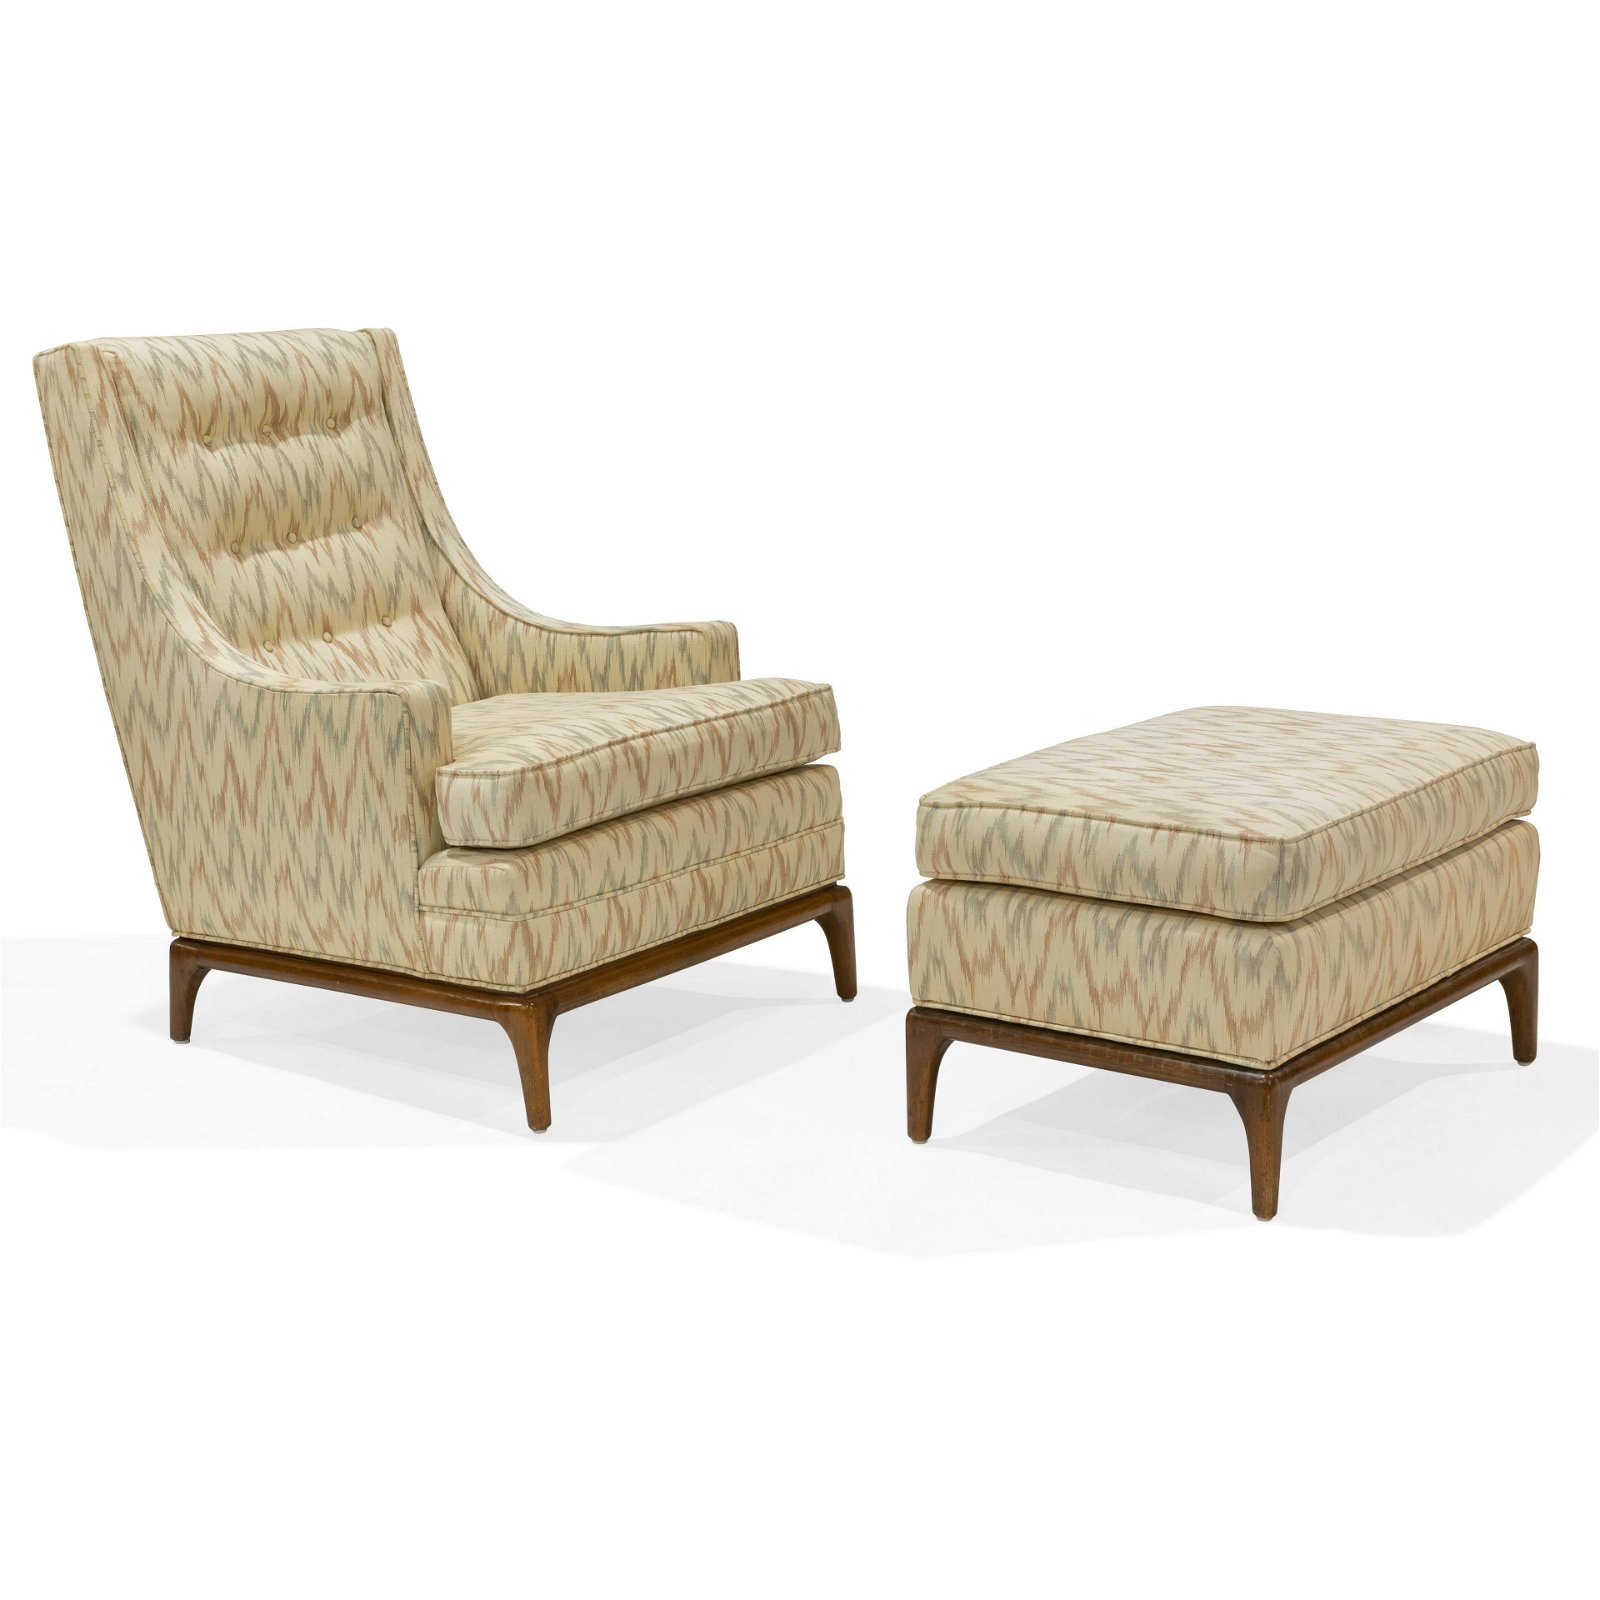 T.H. Robsjohn-Gibbings Style Chair and Ottoman